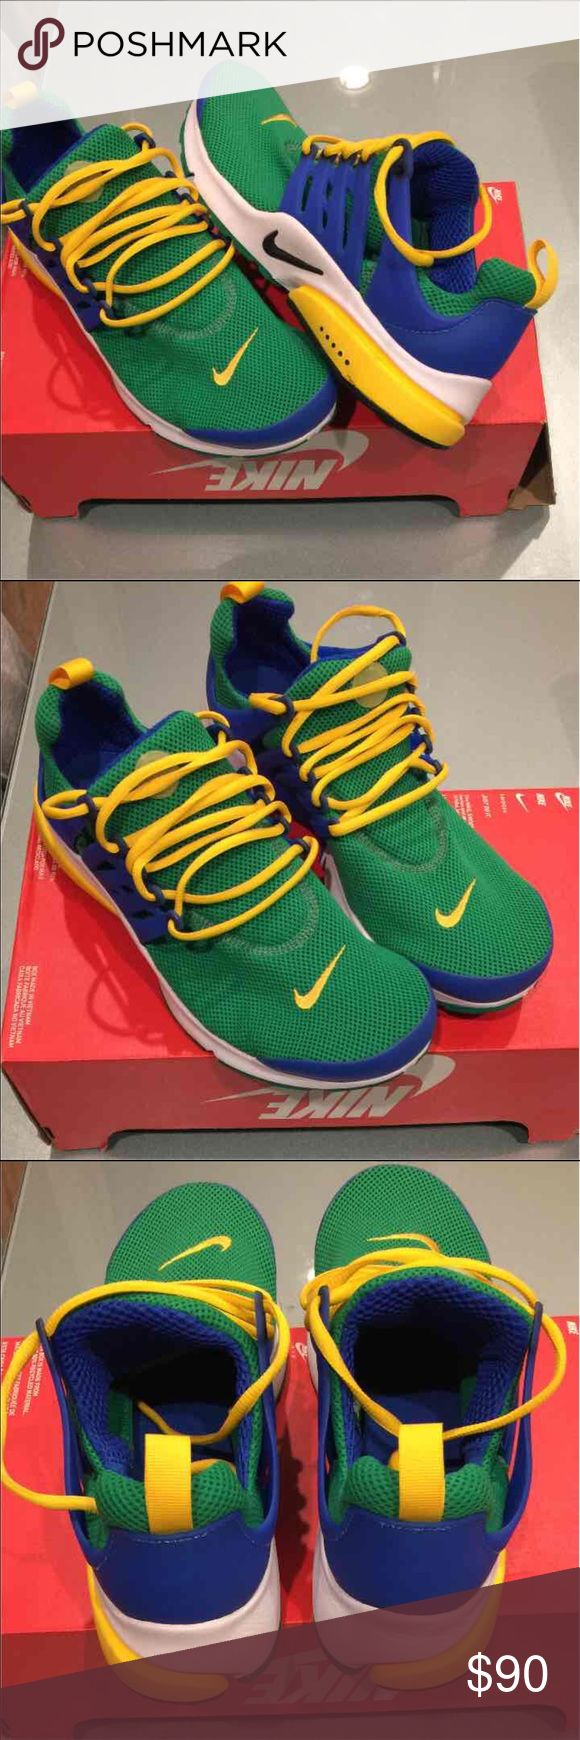 Home nike wmns air presto flyknit ultra midnight turquoise olive - Nike Air Presto Essential Shoes Sz 12 Brand New In Box But No Lid